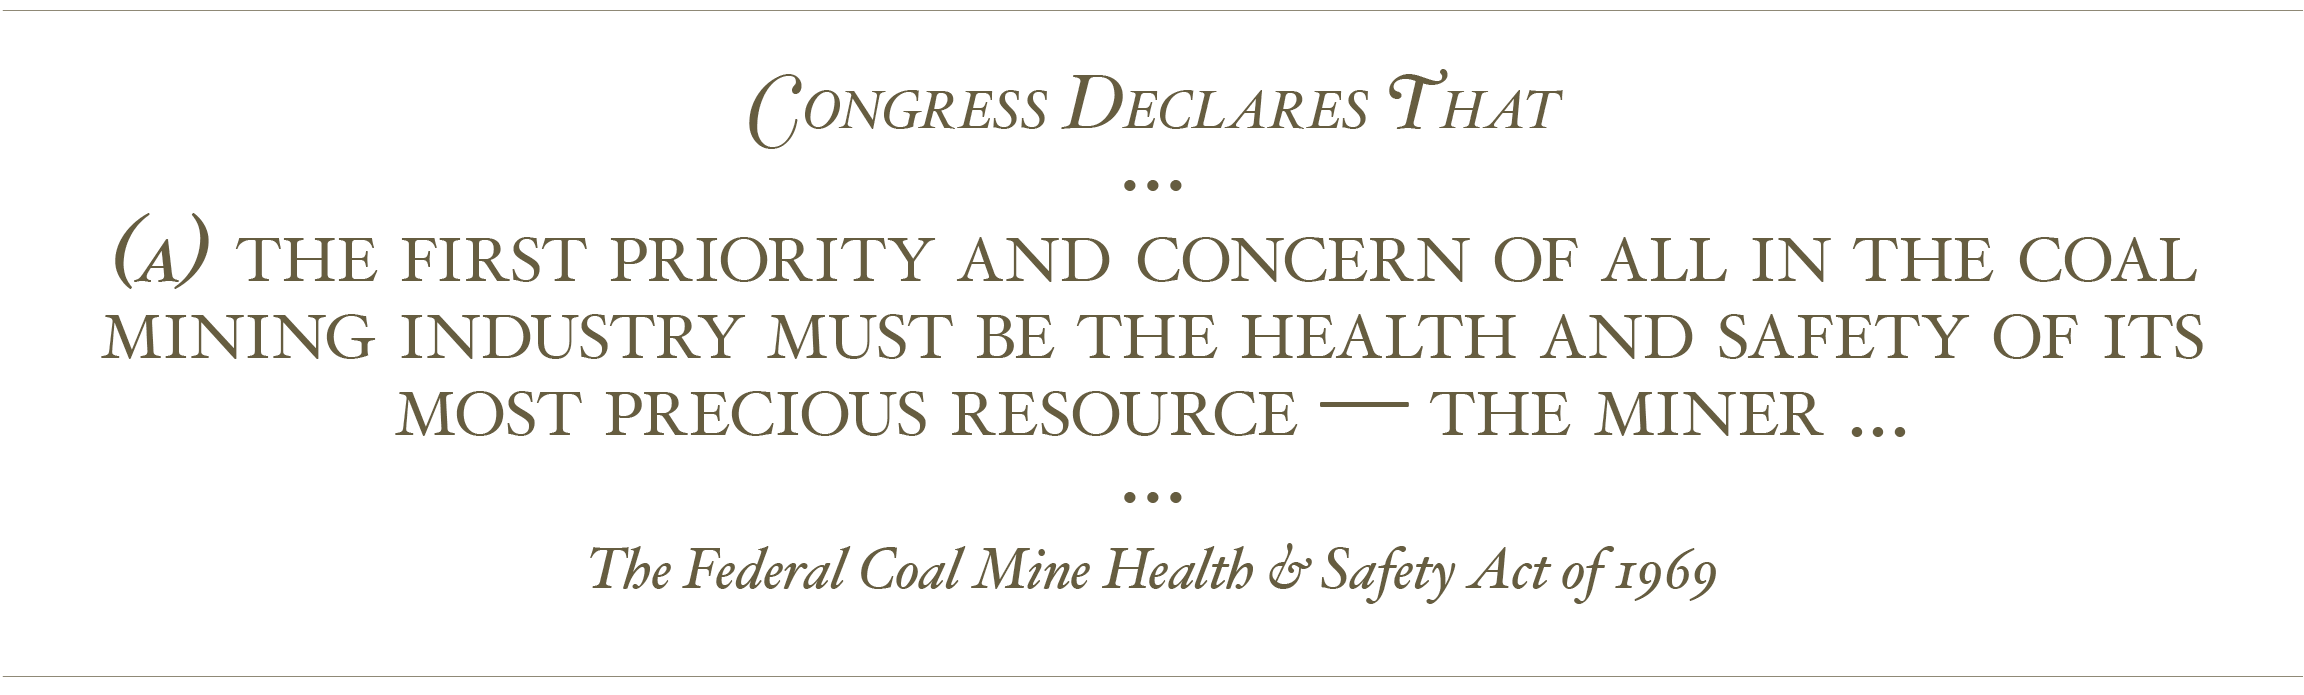 coal-health-and-safety-act.png